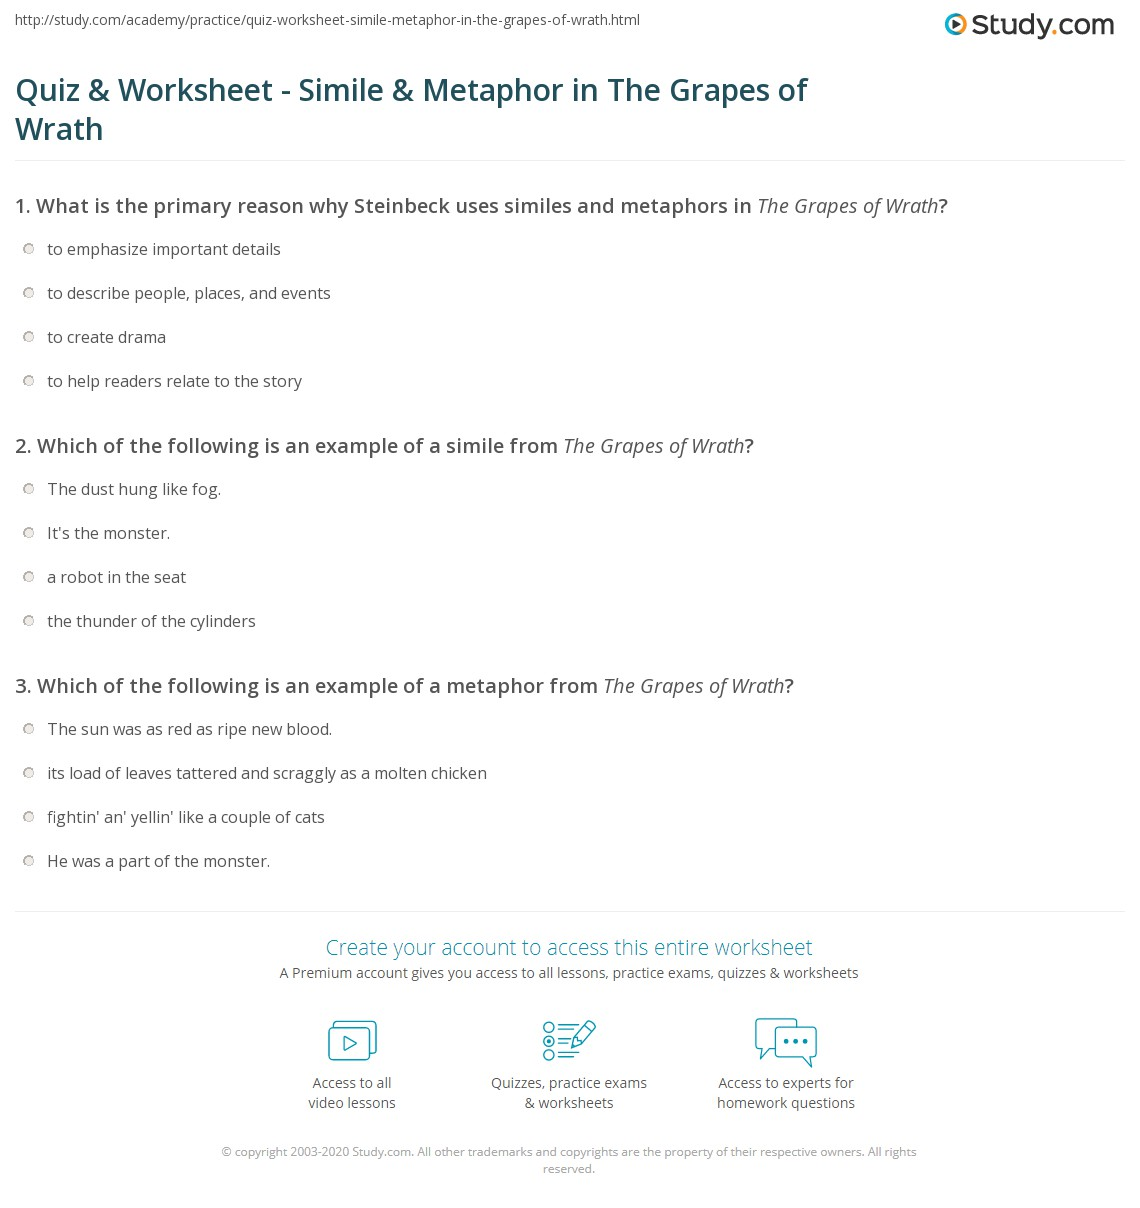 Worksheets Simile And Metaphor Worksheet quiz worksheet simile metaphor in the grapes of wrath study com print worksheet